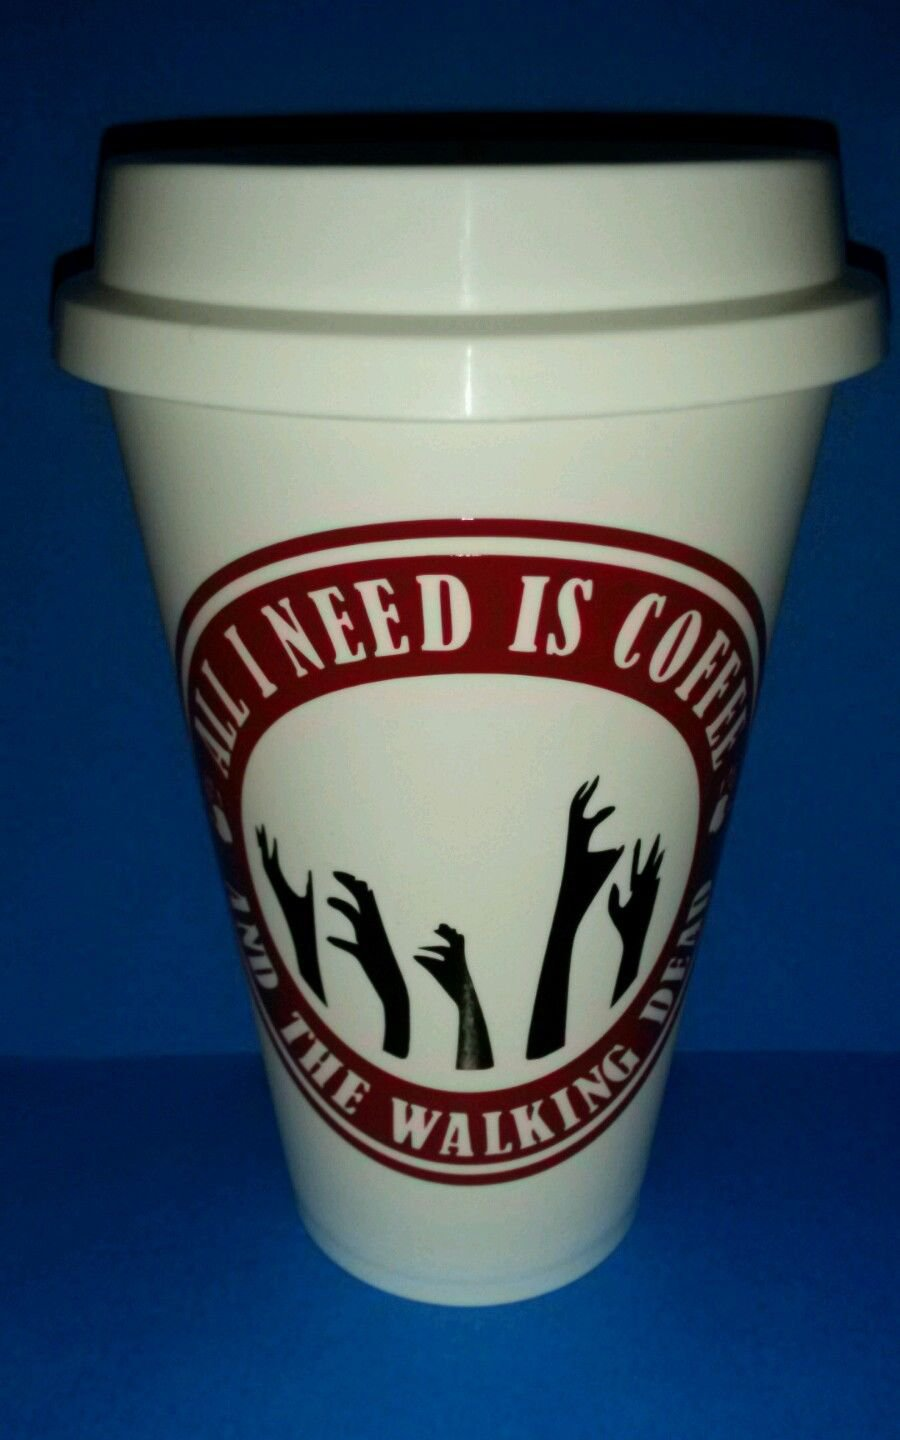 Zombies - Walking Dead -  Coffee Cup - All I need is coffee and walking dead!